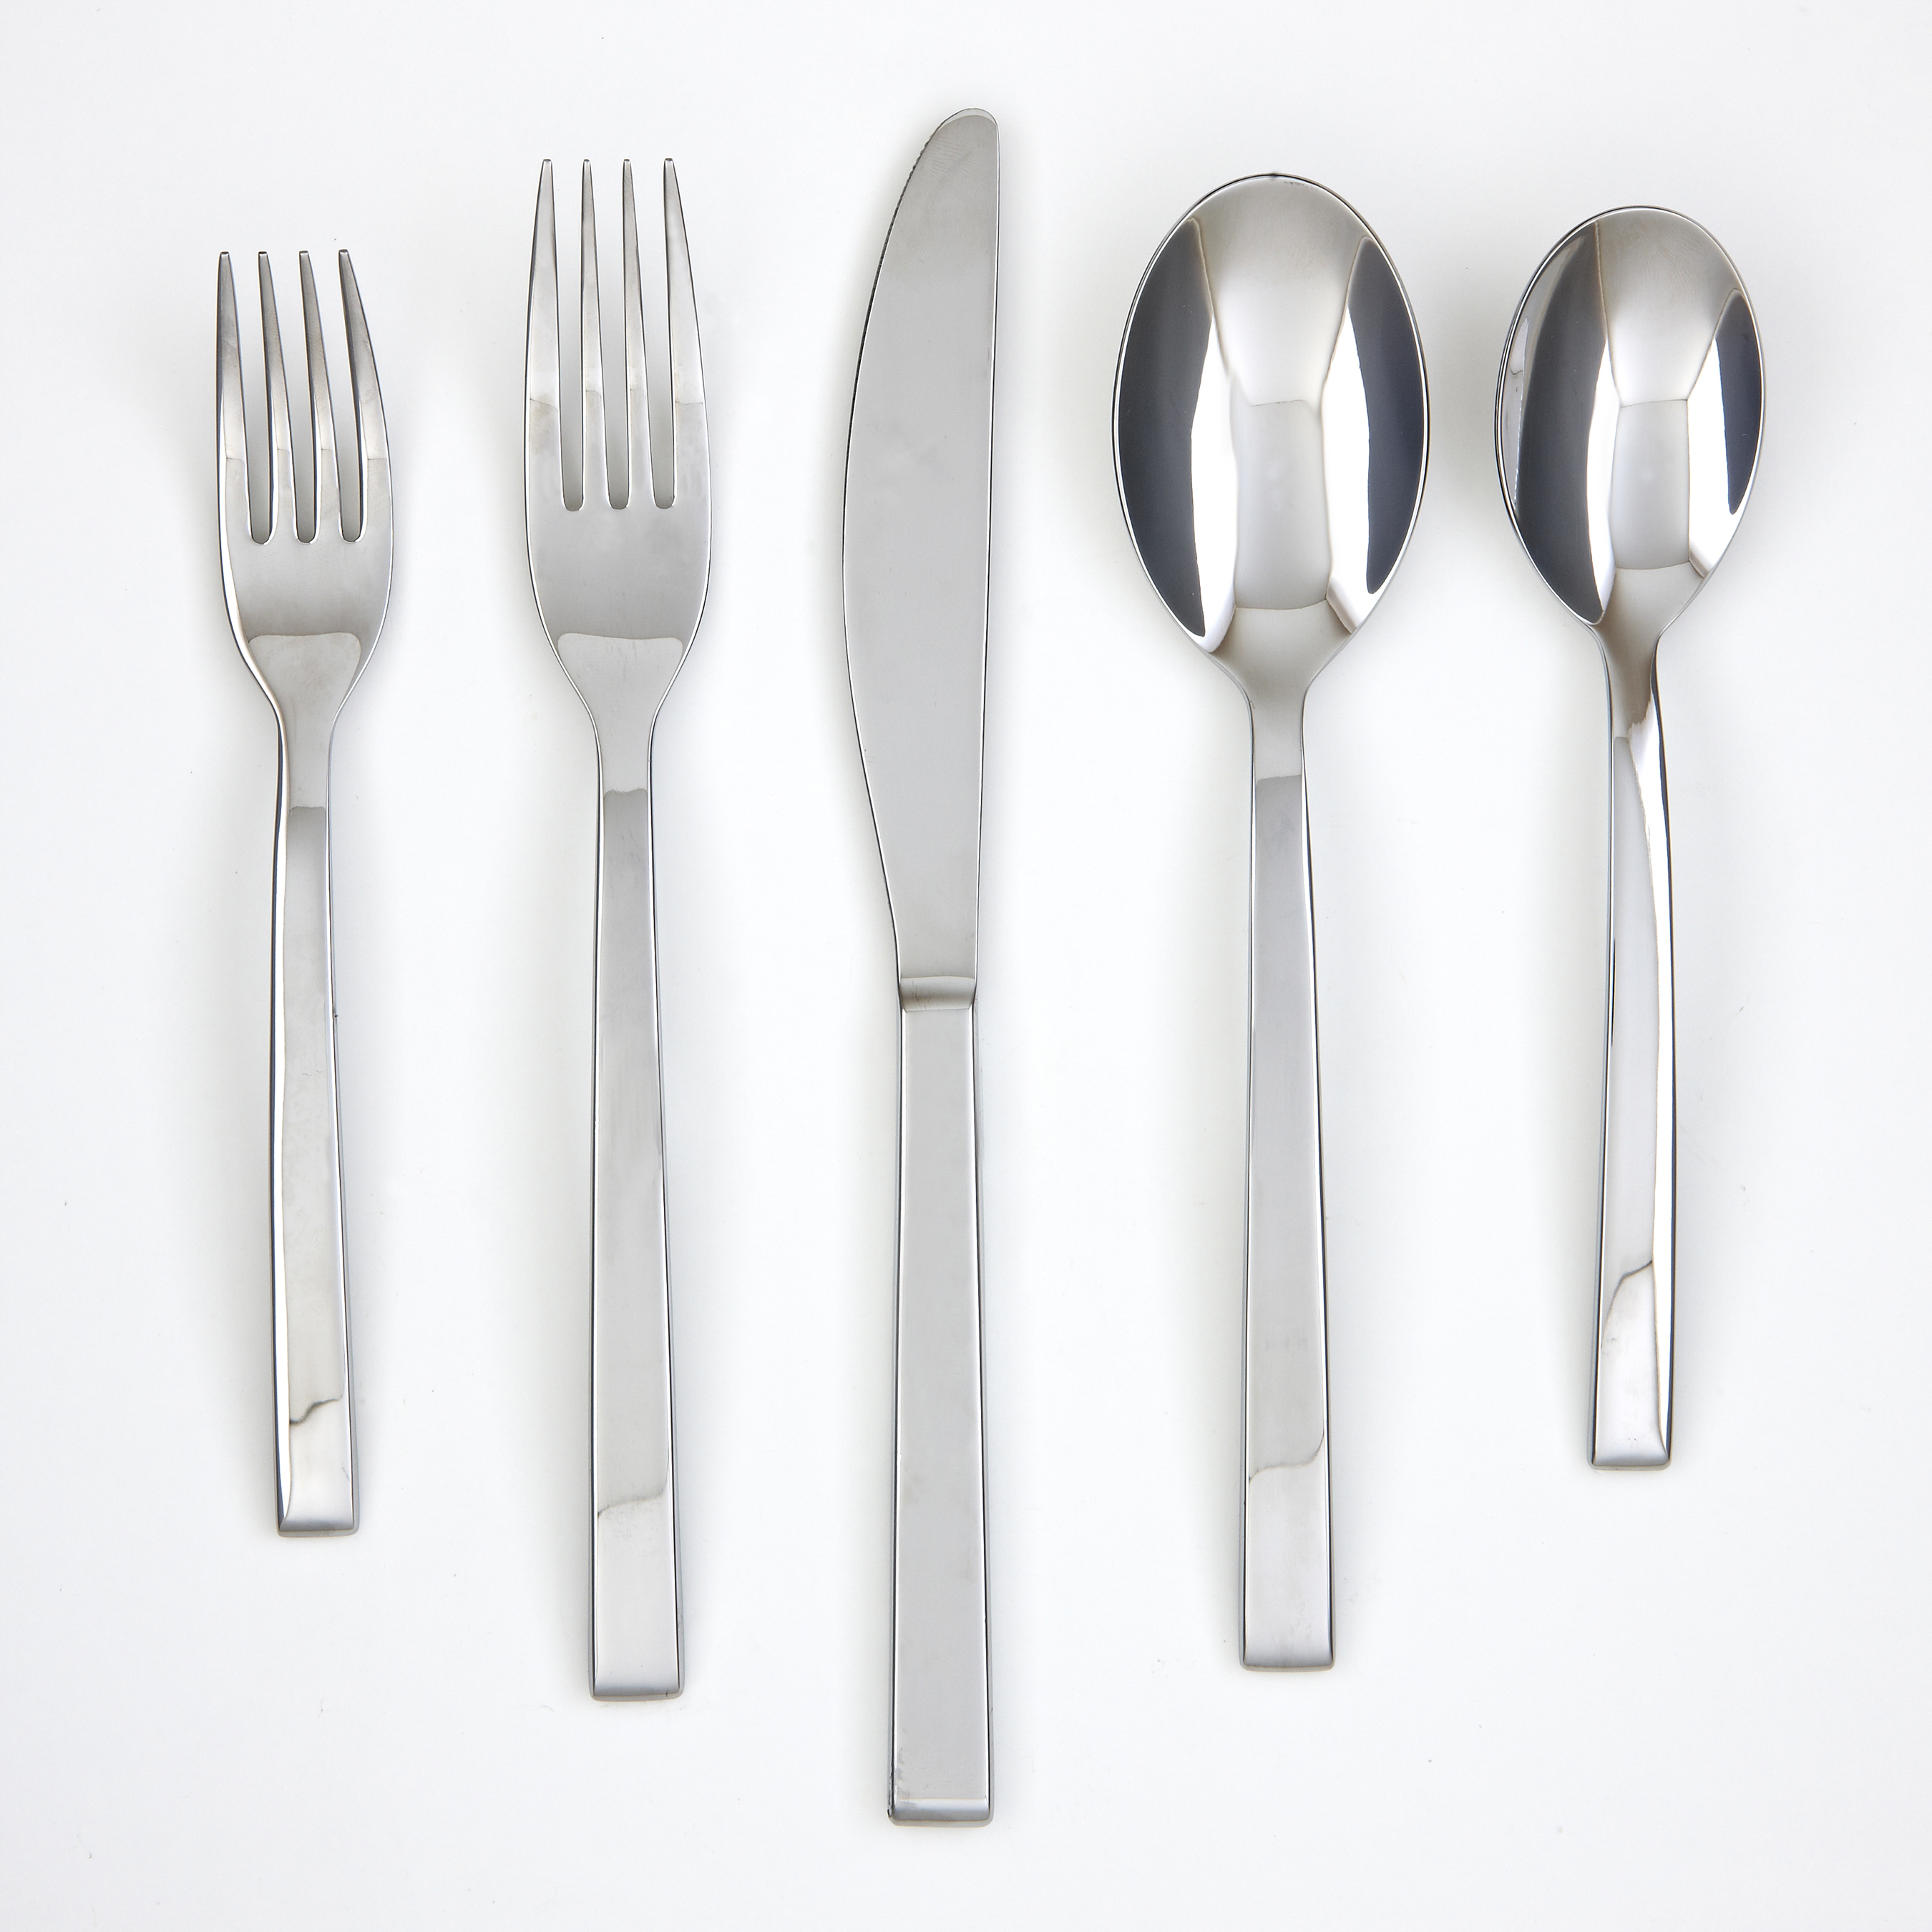 Creative cambridge flatware 5 pcs silverware flatware for kitchen or dining Ideas